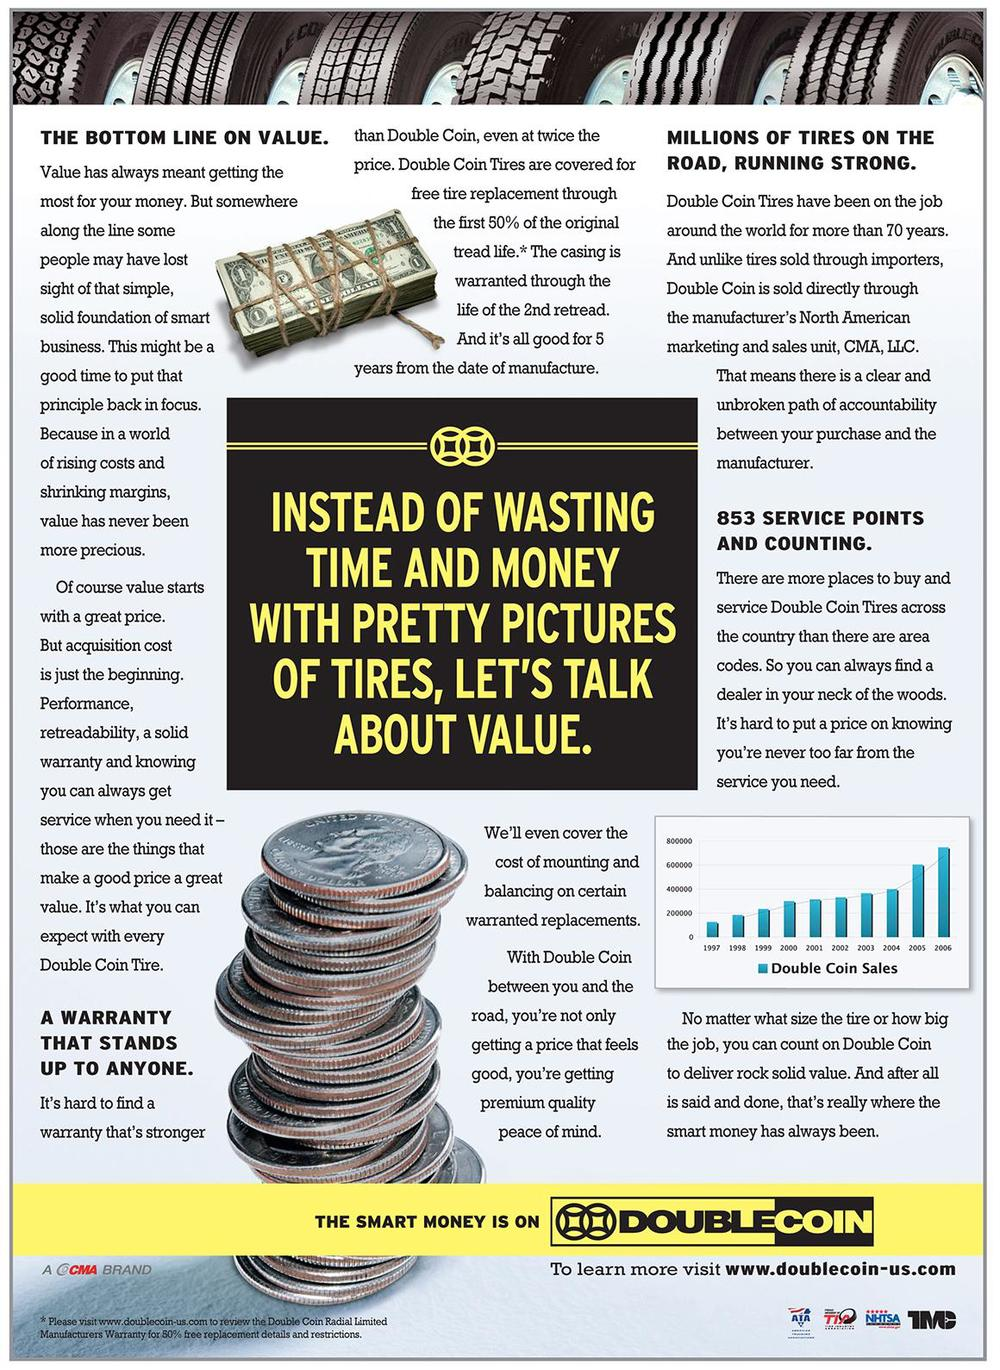 Double Coin truck tires are much more than a less expensive alternative.